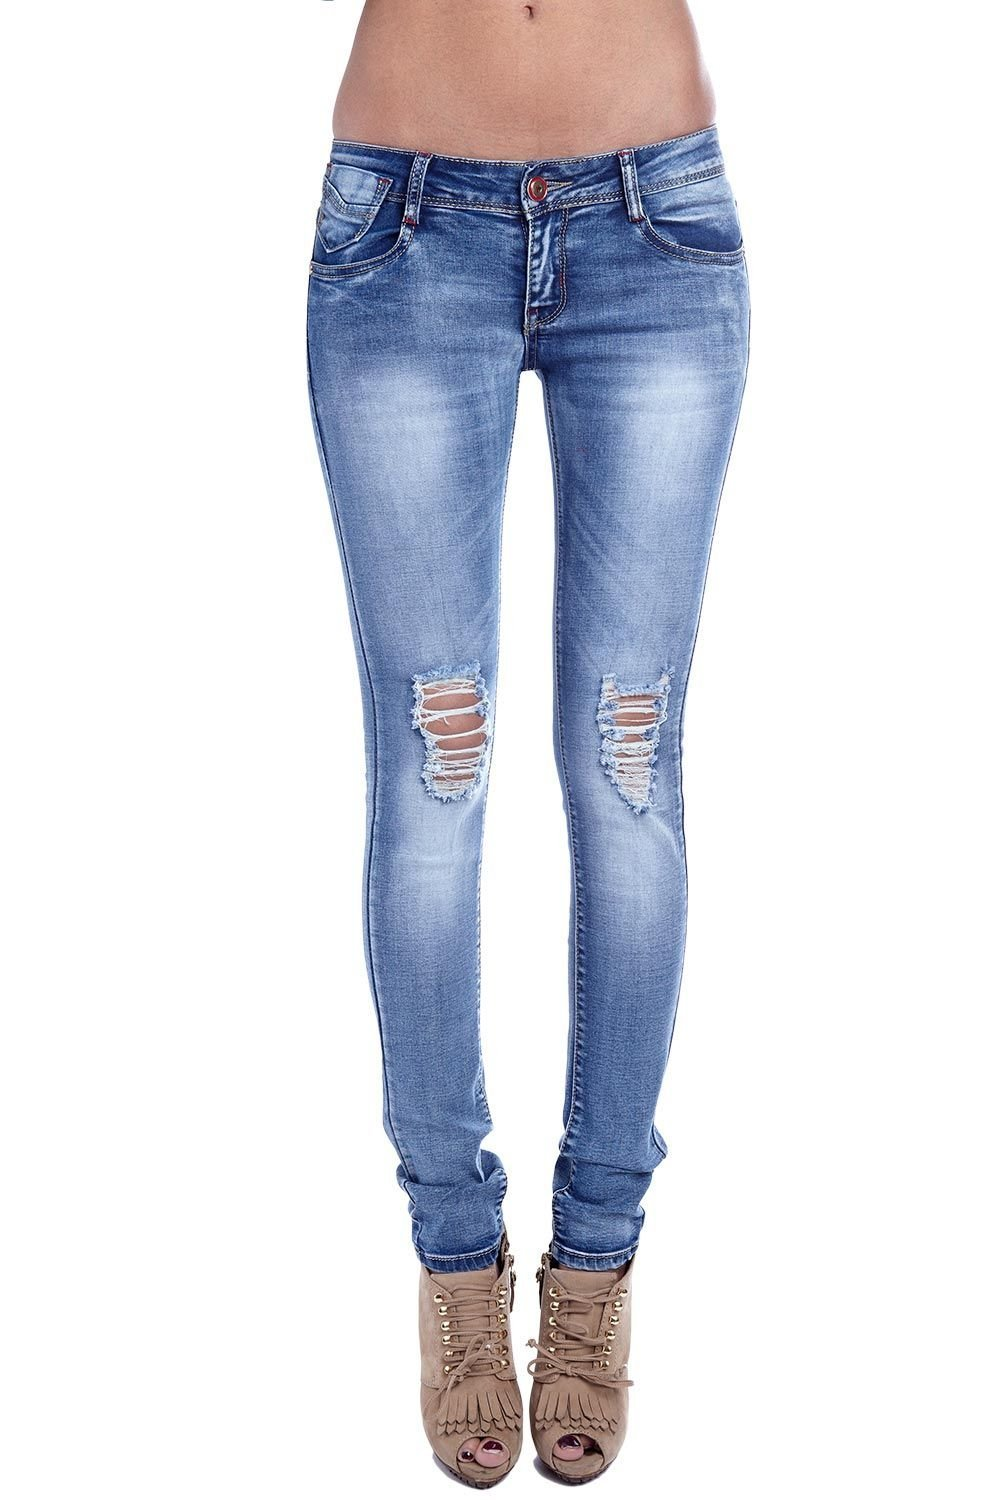 Q2 Womenu0026#39;s Super Skinny Jeans With Low-rise Waist At ...